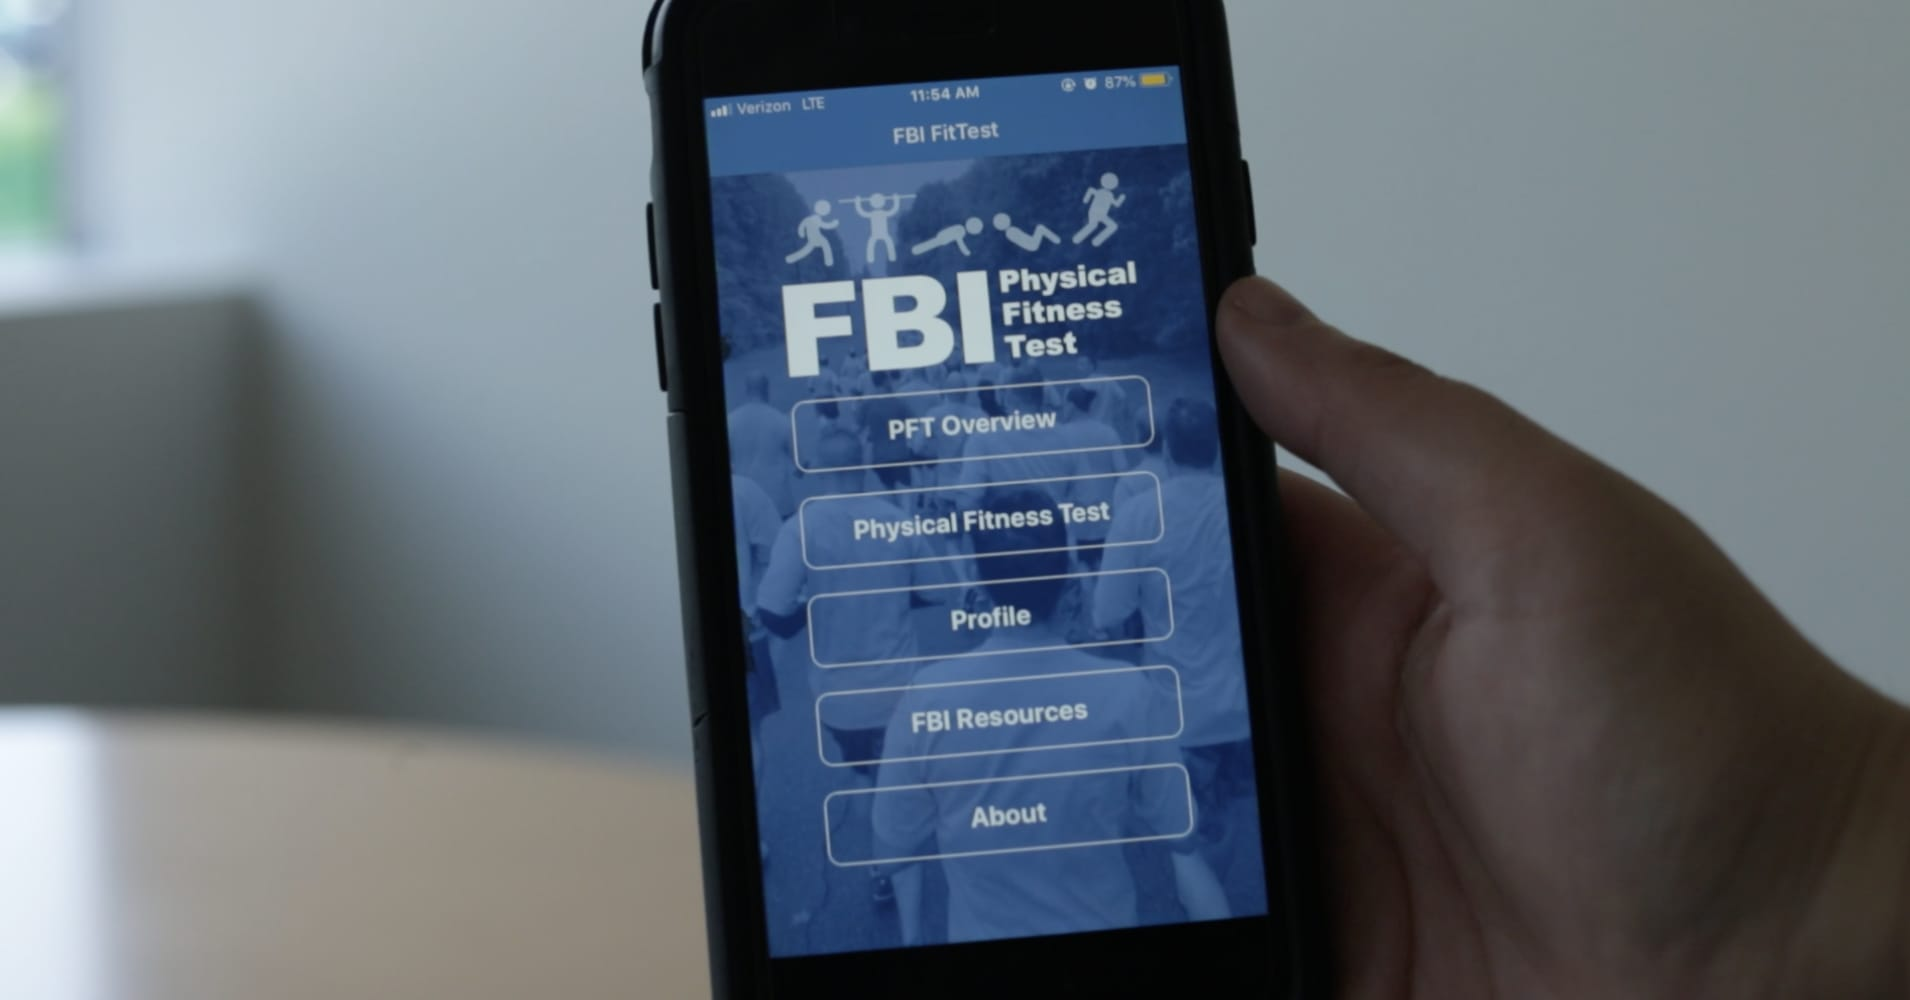 FBI fitness app asks users to agree to 'all of their activities monitored and recorded'